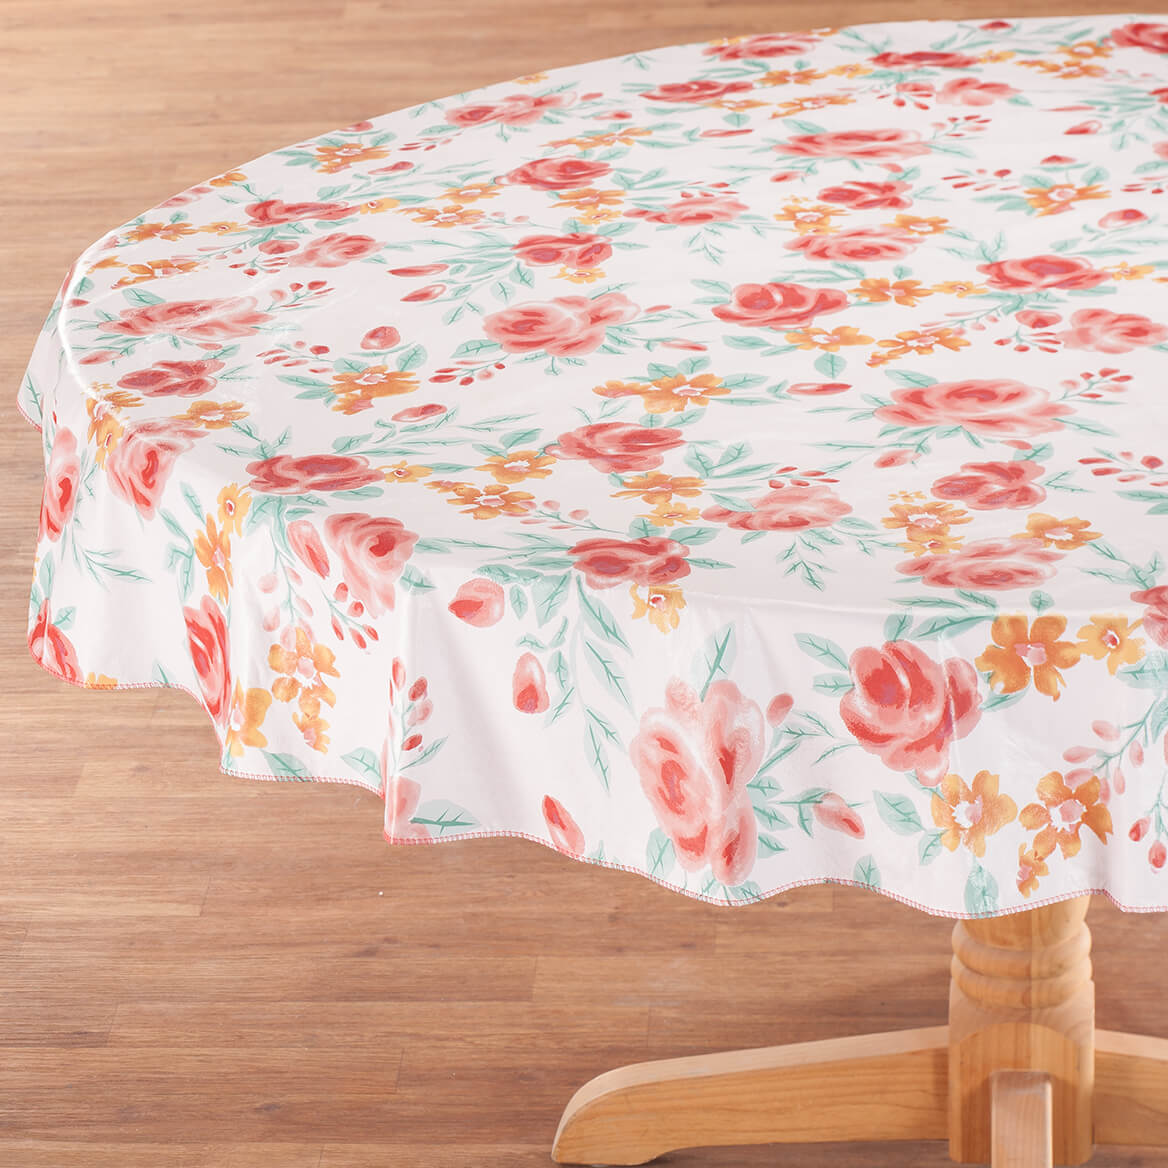 Watercolor Vinyl Table Cover by Home Style Kitchen-366972